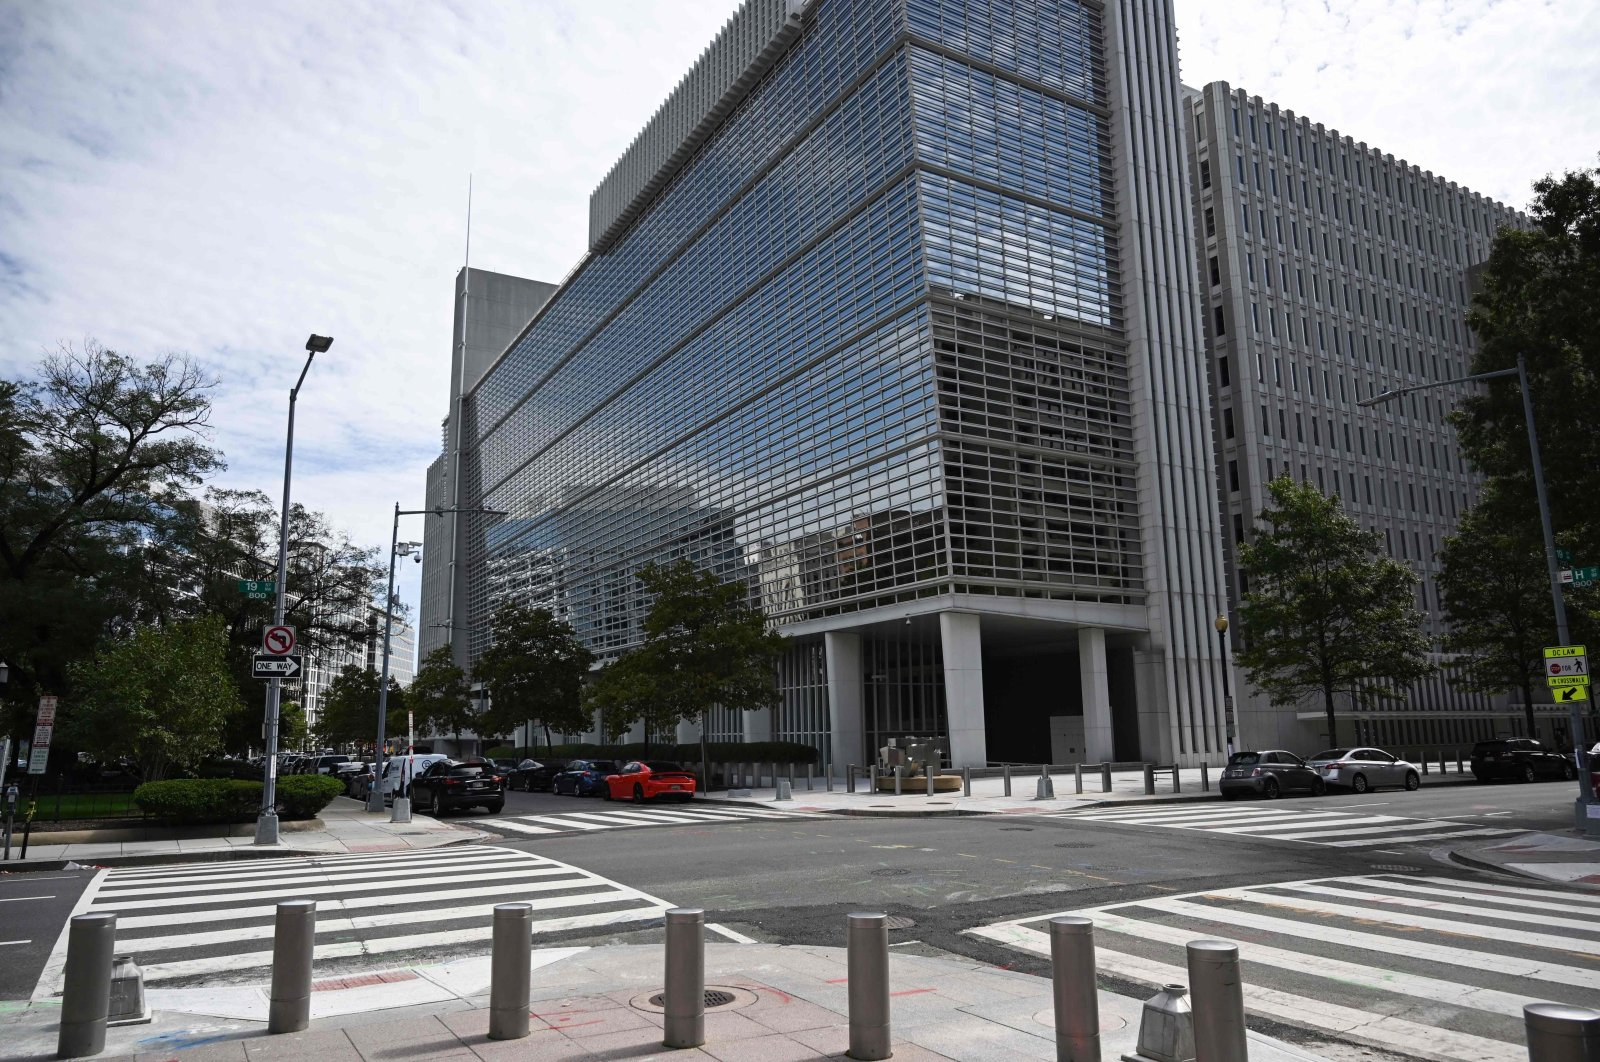 The World Bank headquarters is viewed in Washington, D.C., Oct. 1, 2020. (AFP Photo)